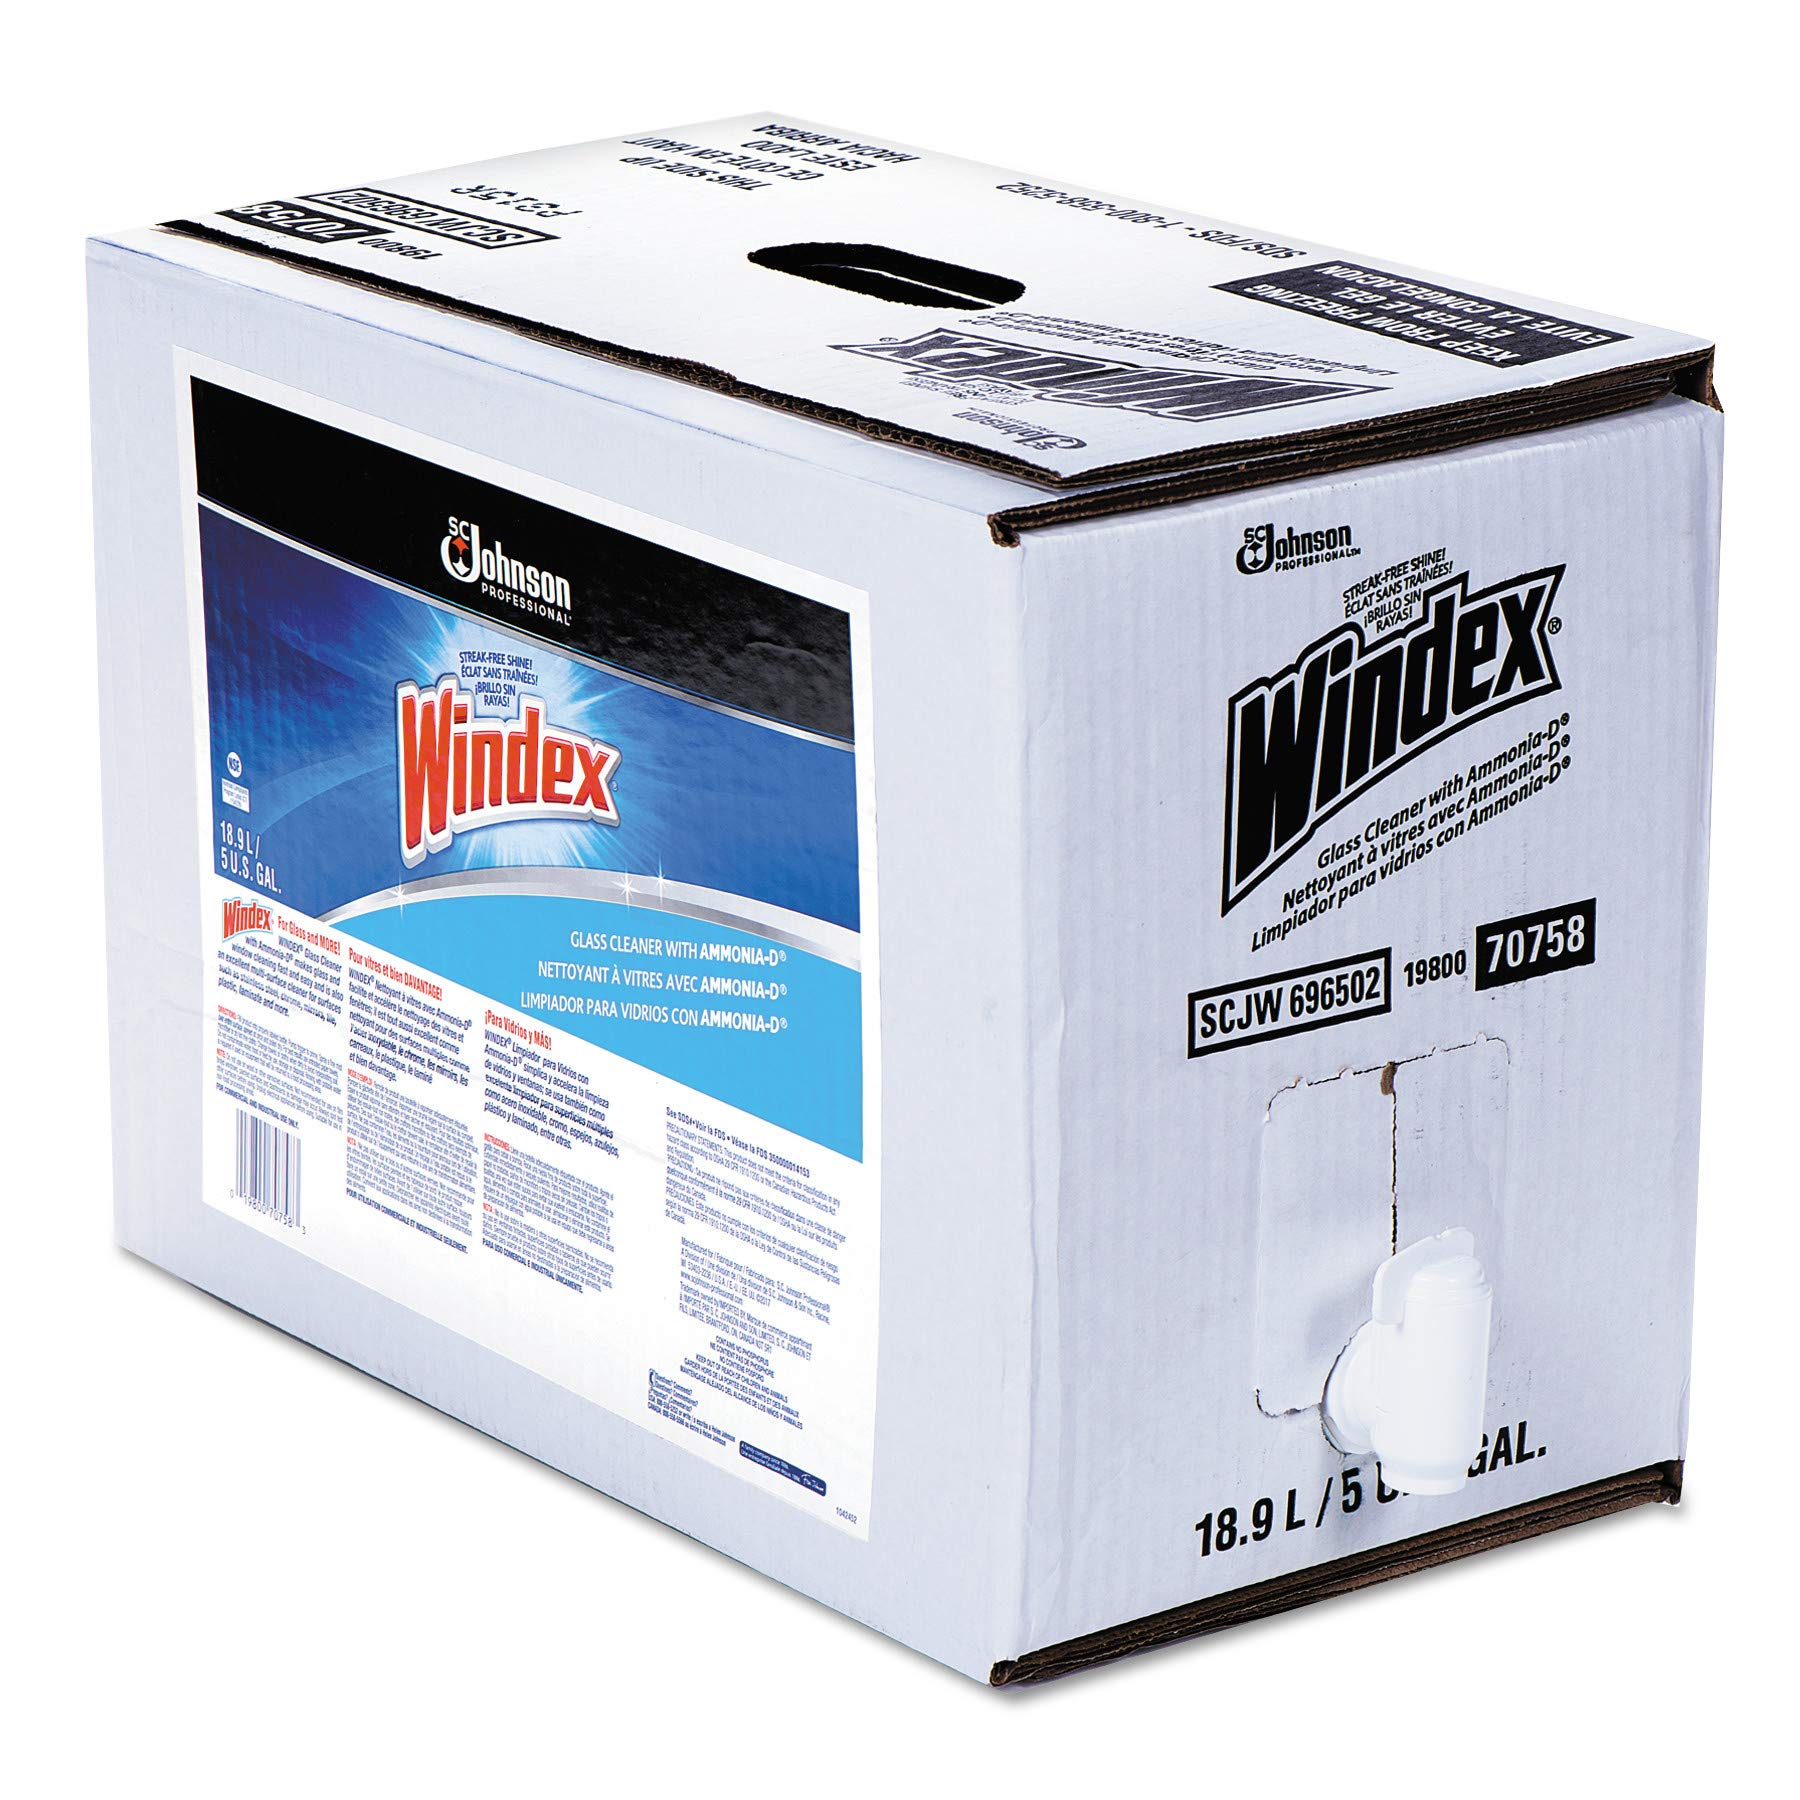 SJN682251 - Windex Powerized Formula Glass/Surface Cleaner